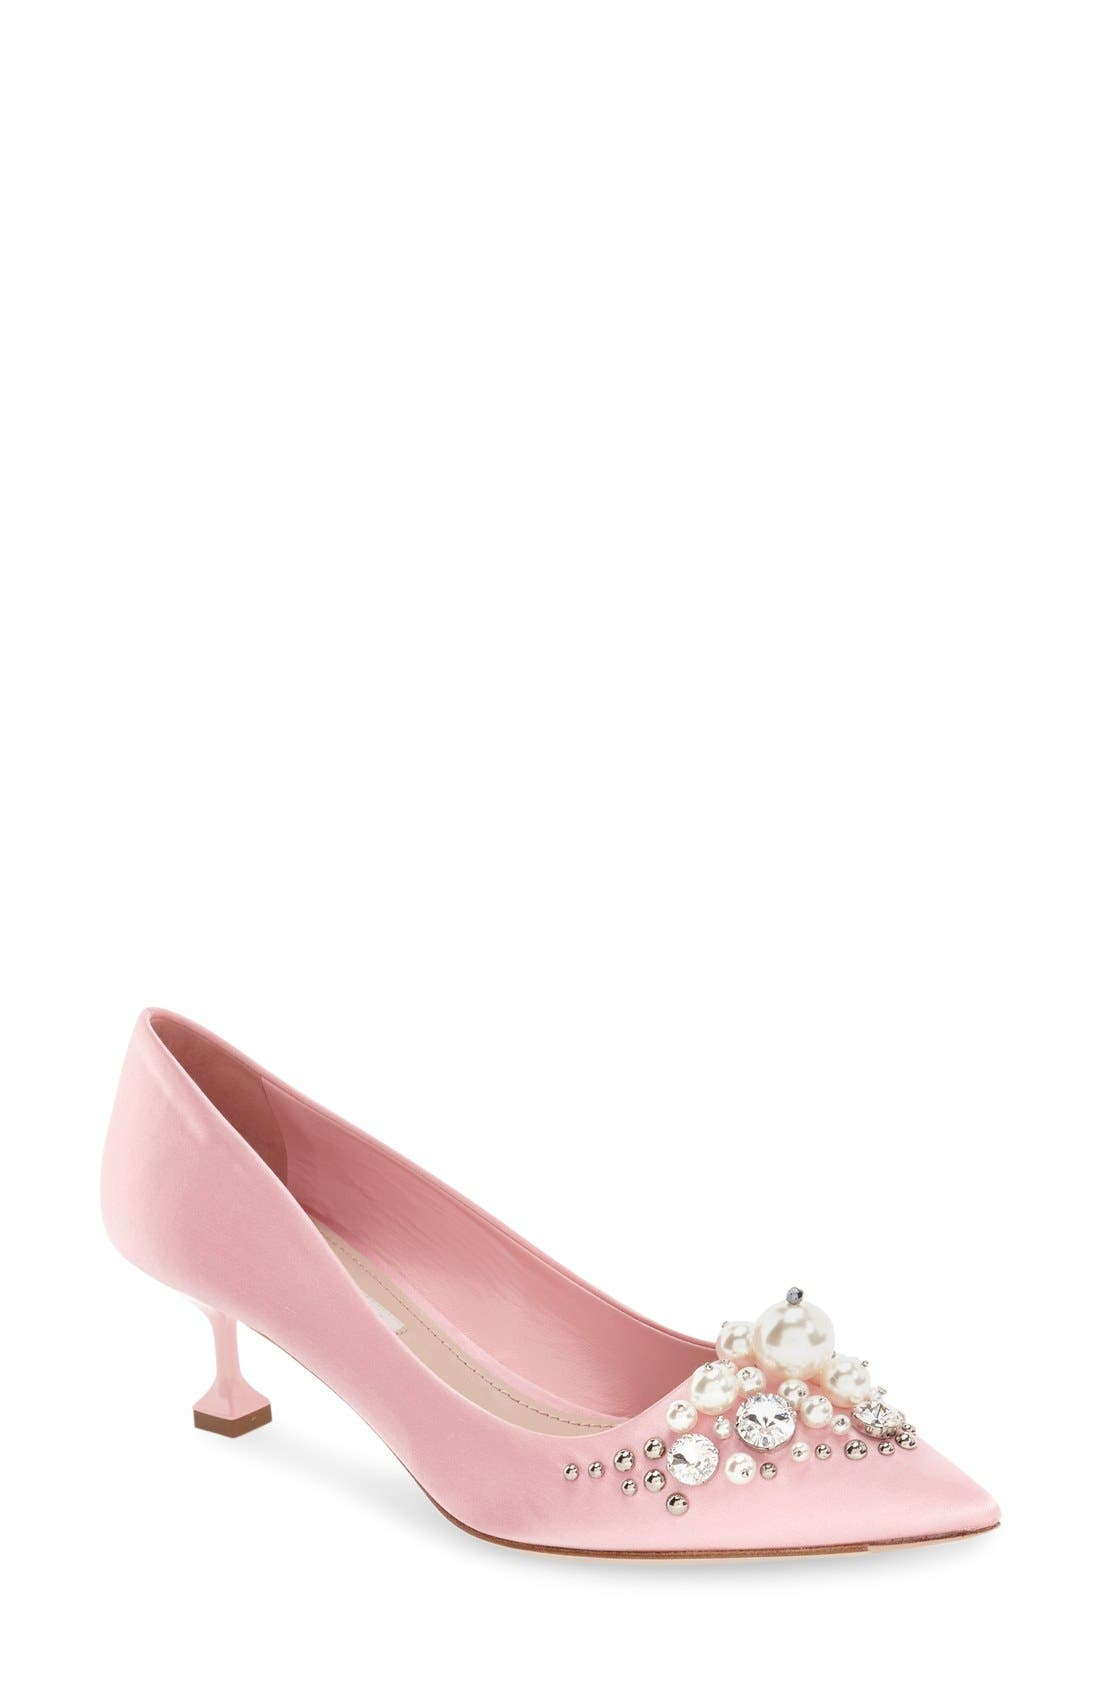 Miu Miu Embellished Pointy Toe Pump (Women)